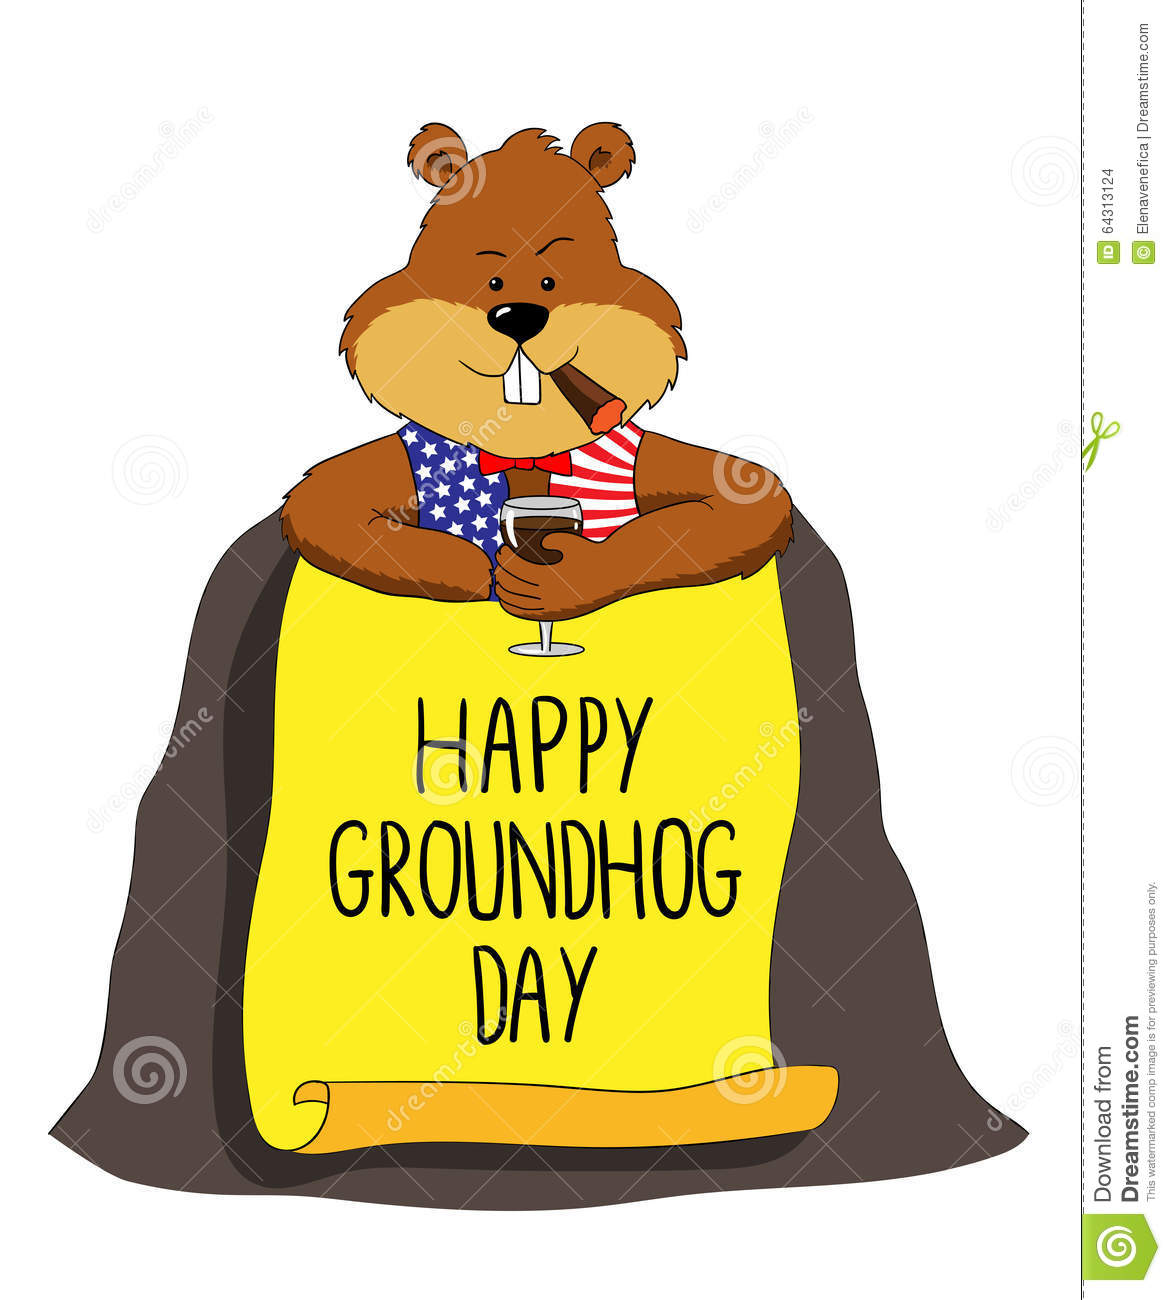 Free happy groundhog day clipart 3 » Clipart Station.